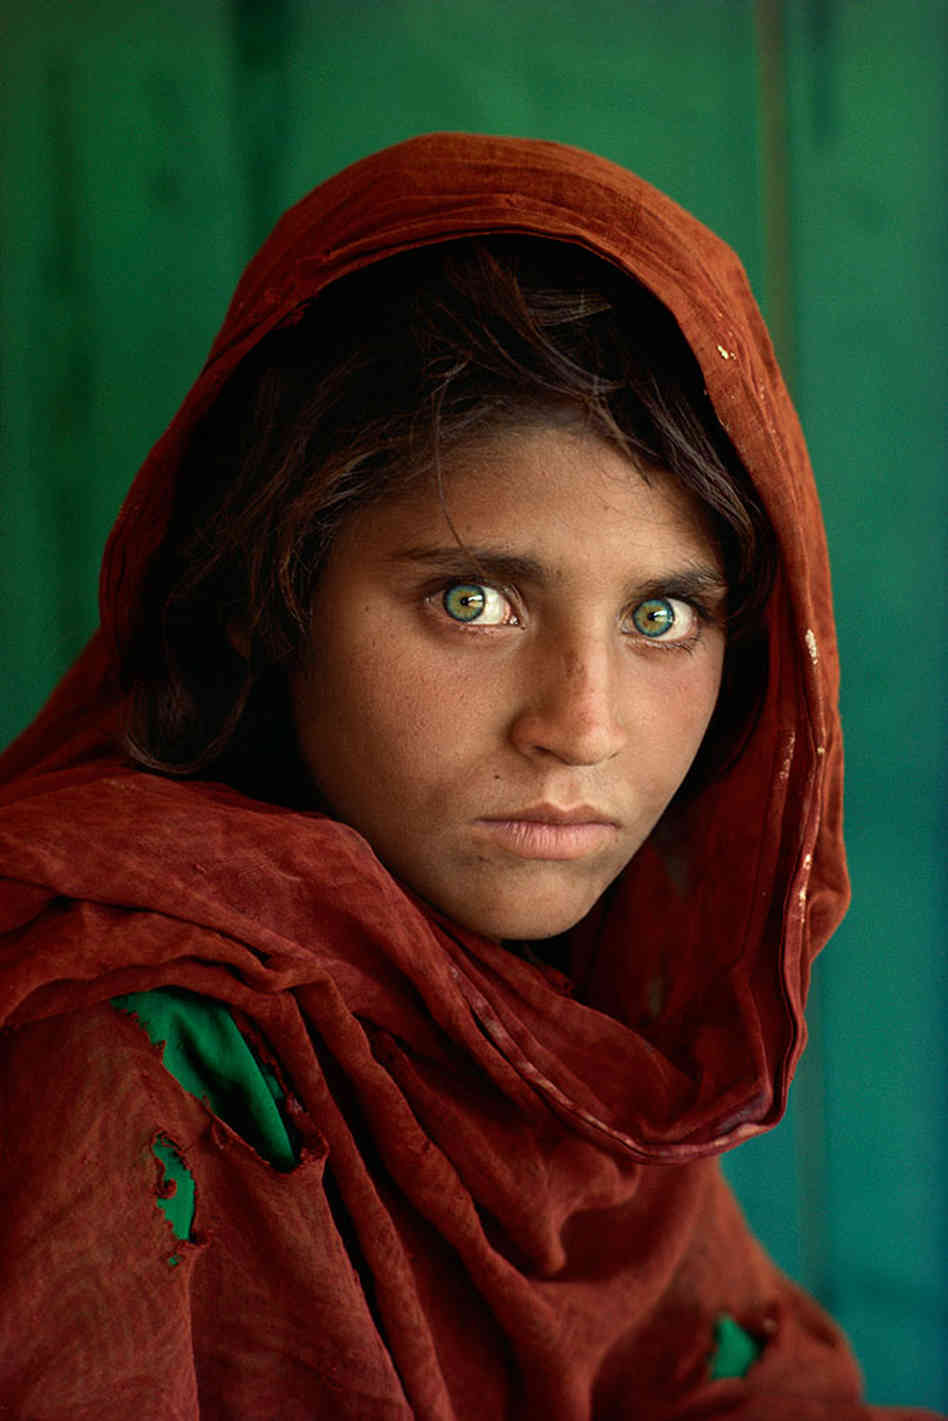 The Afghan Girl - Steve McCurry